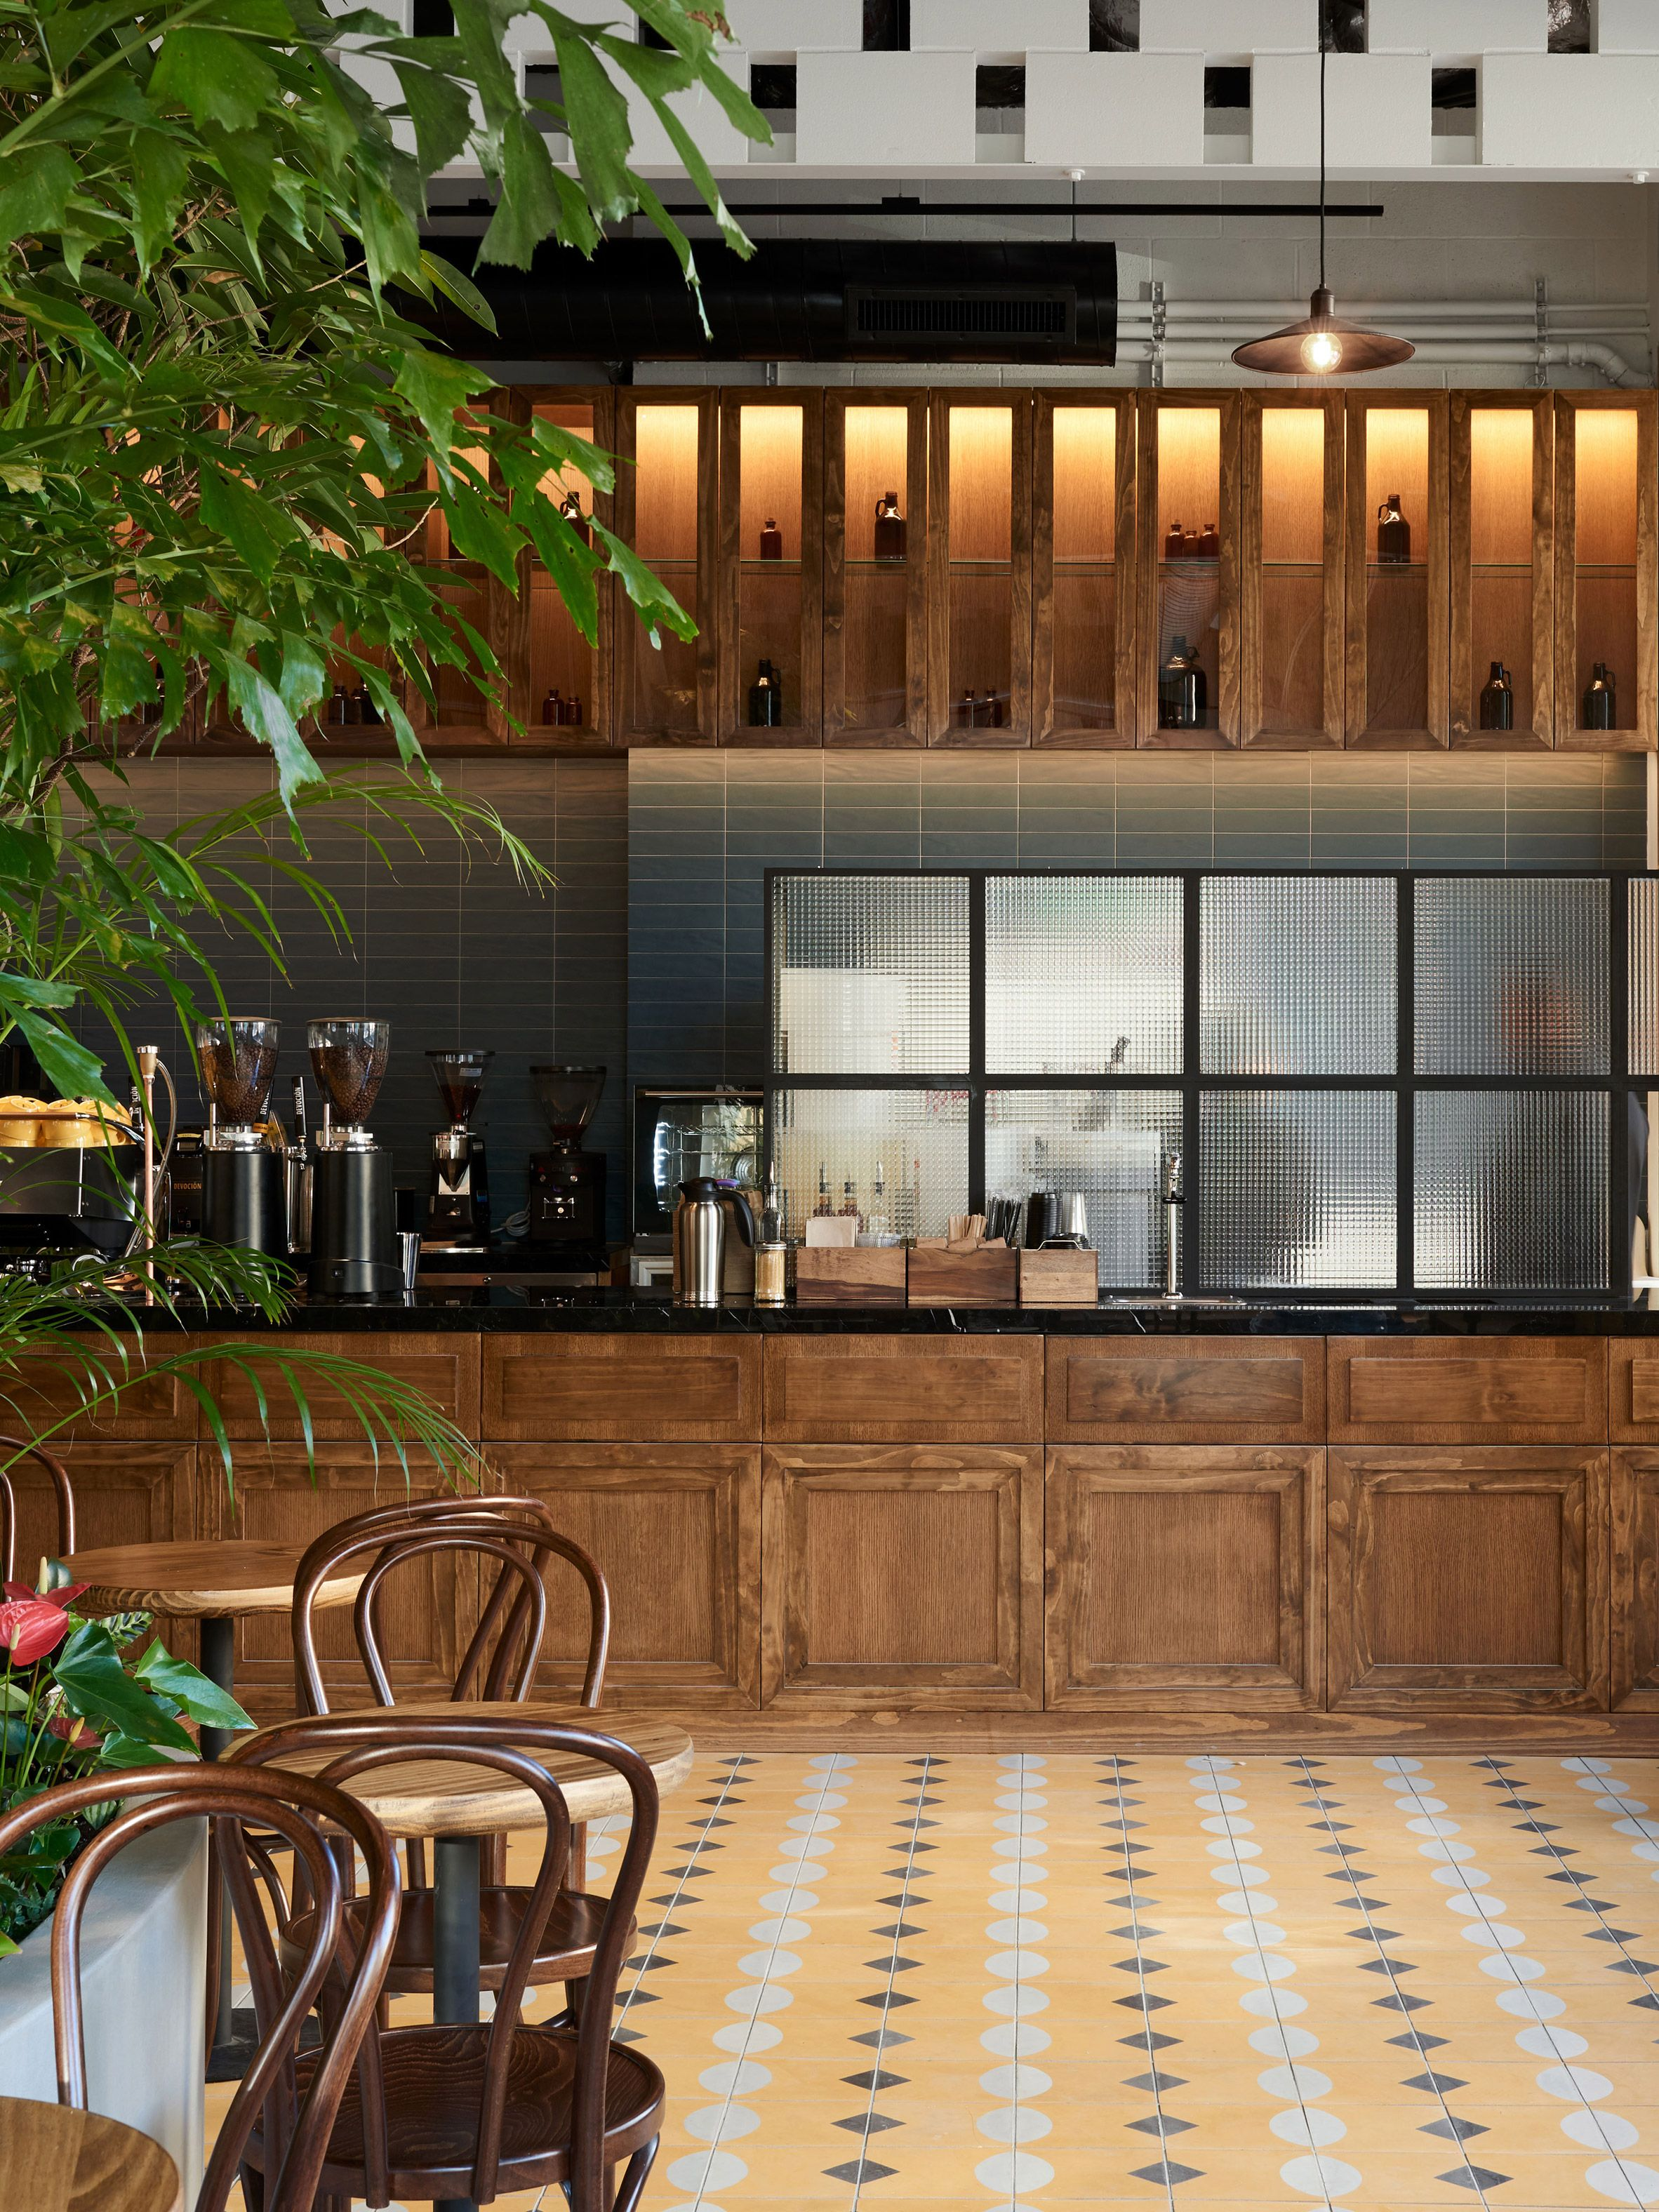 LOT creates tropical garden within Brooklyn coffee house